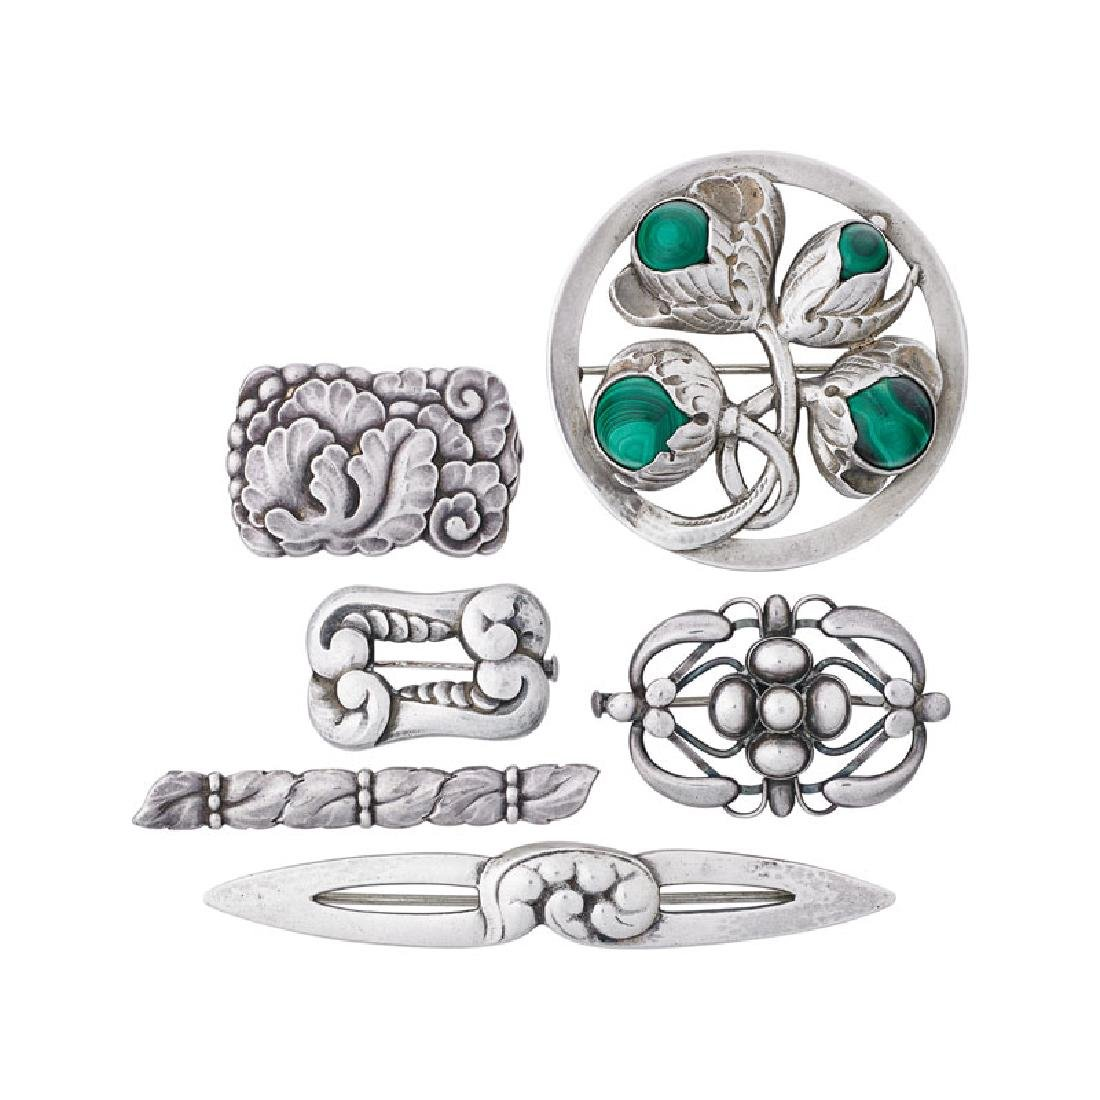 GEORG JENSEN OR NIELSEN SILVER BROOCHES